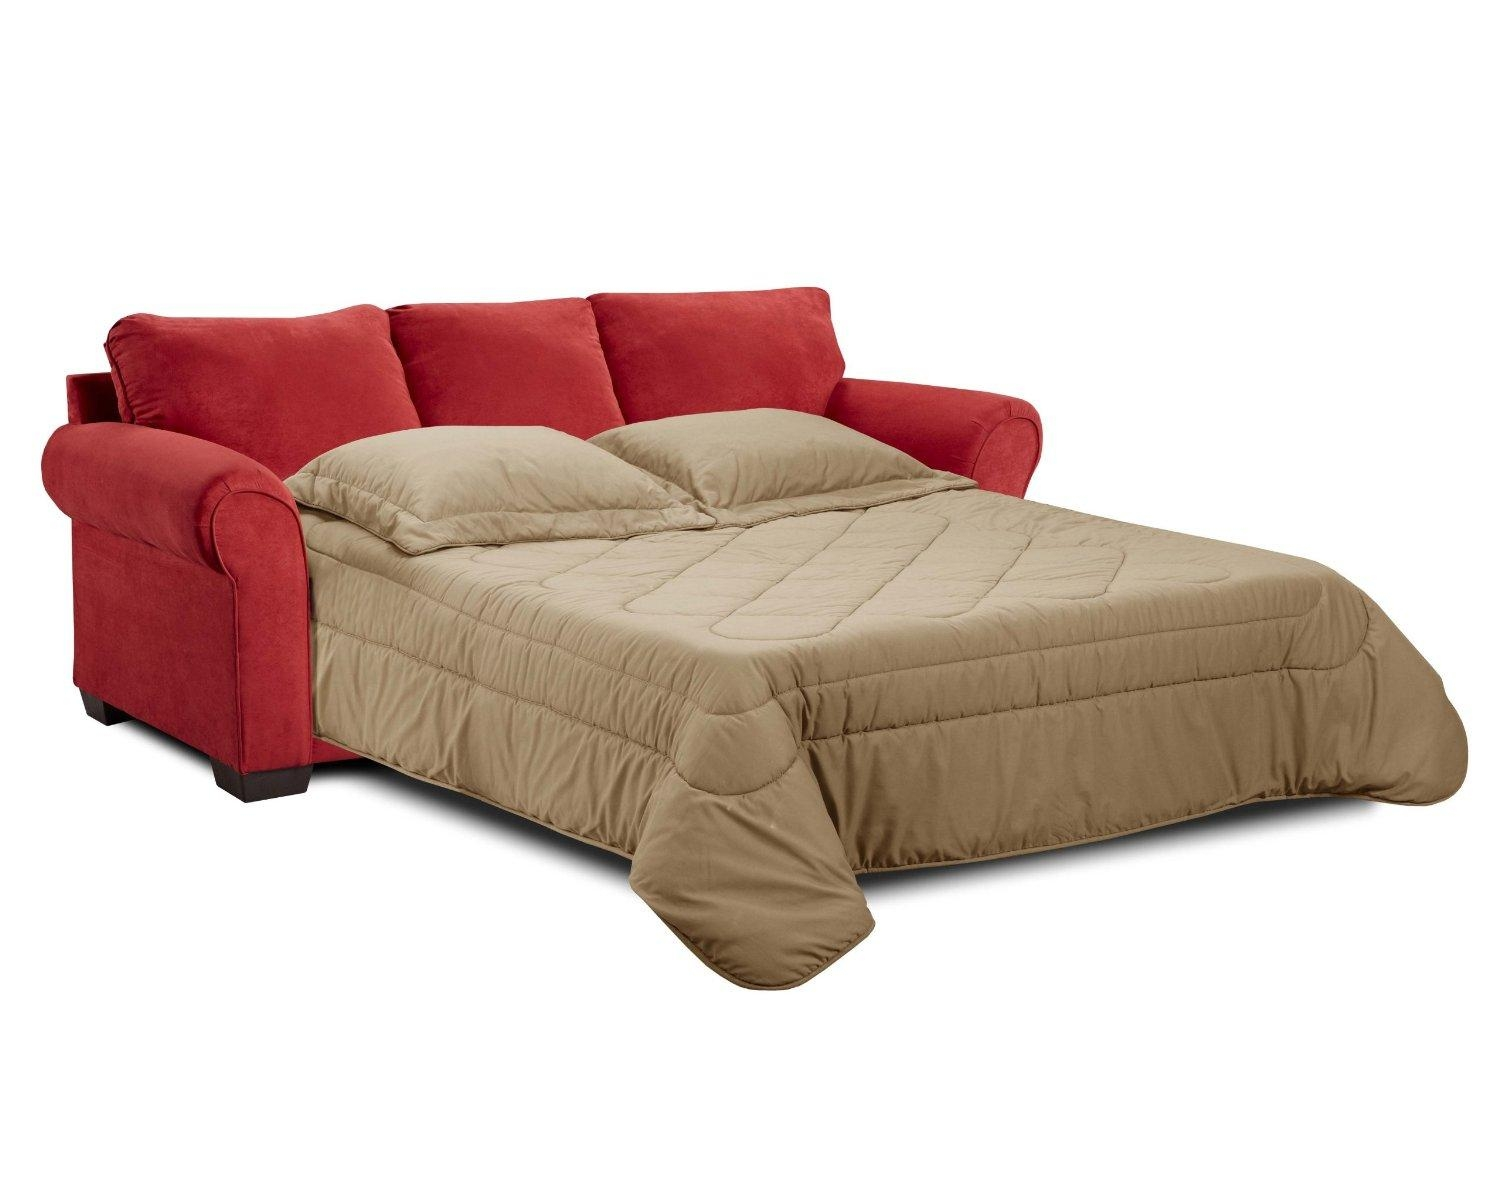 Queen Size Sofa Bed | Tehranmix Decoration for Queen Sofa Beds